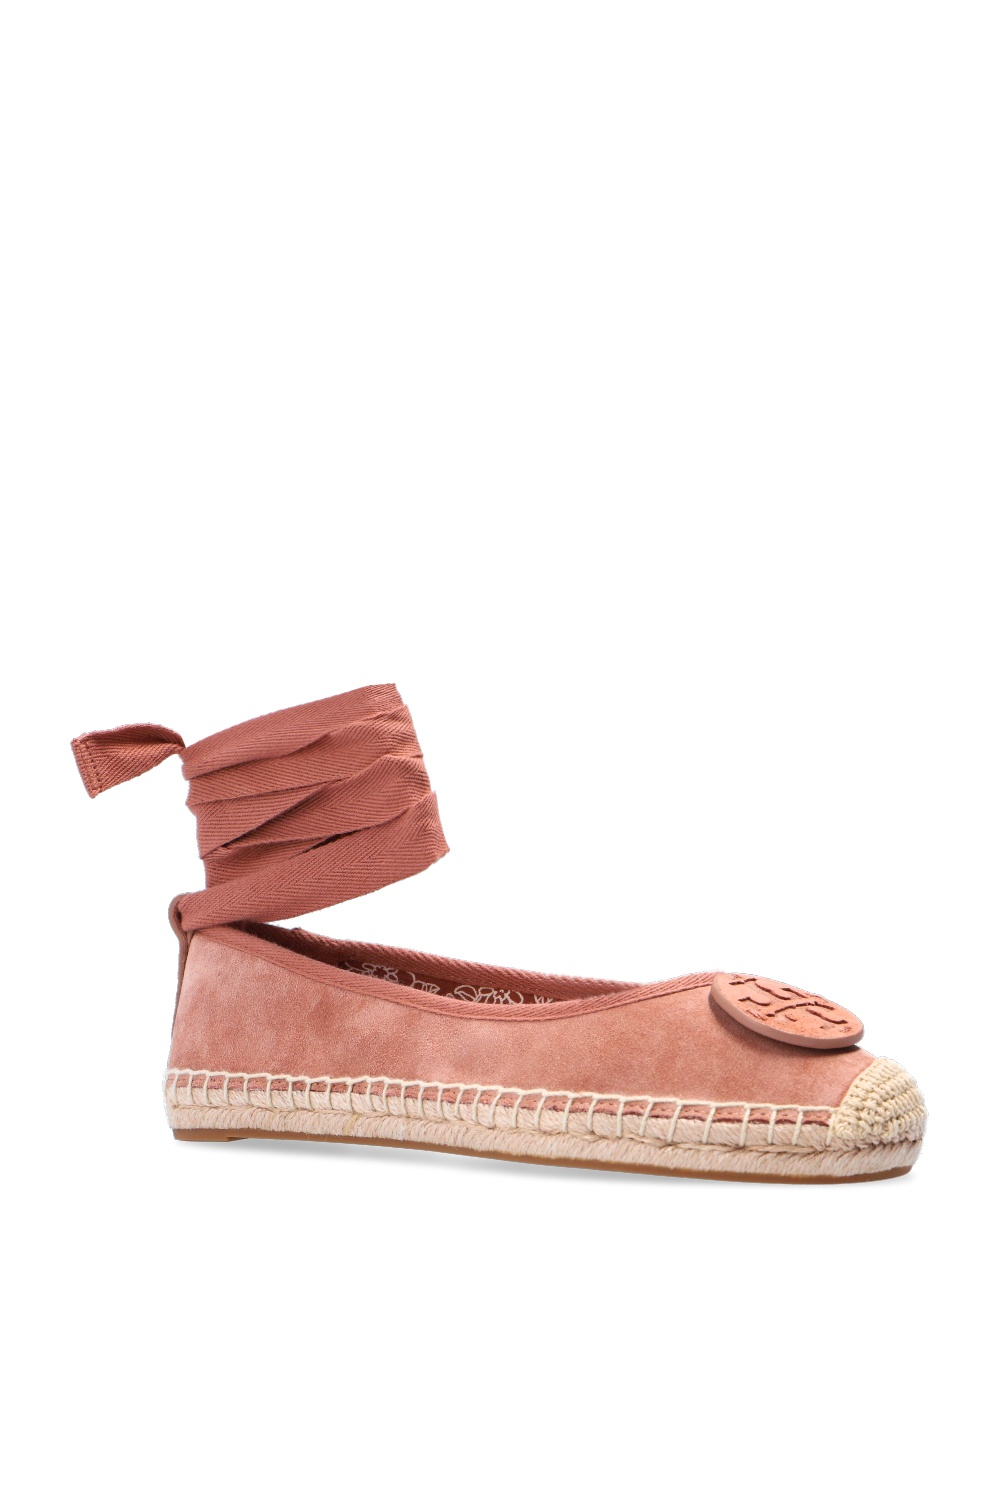 Tory Burch 'Minnie' espadrilles with ankle ties